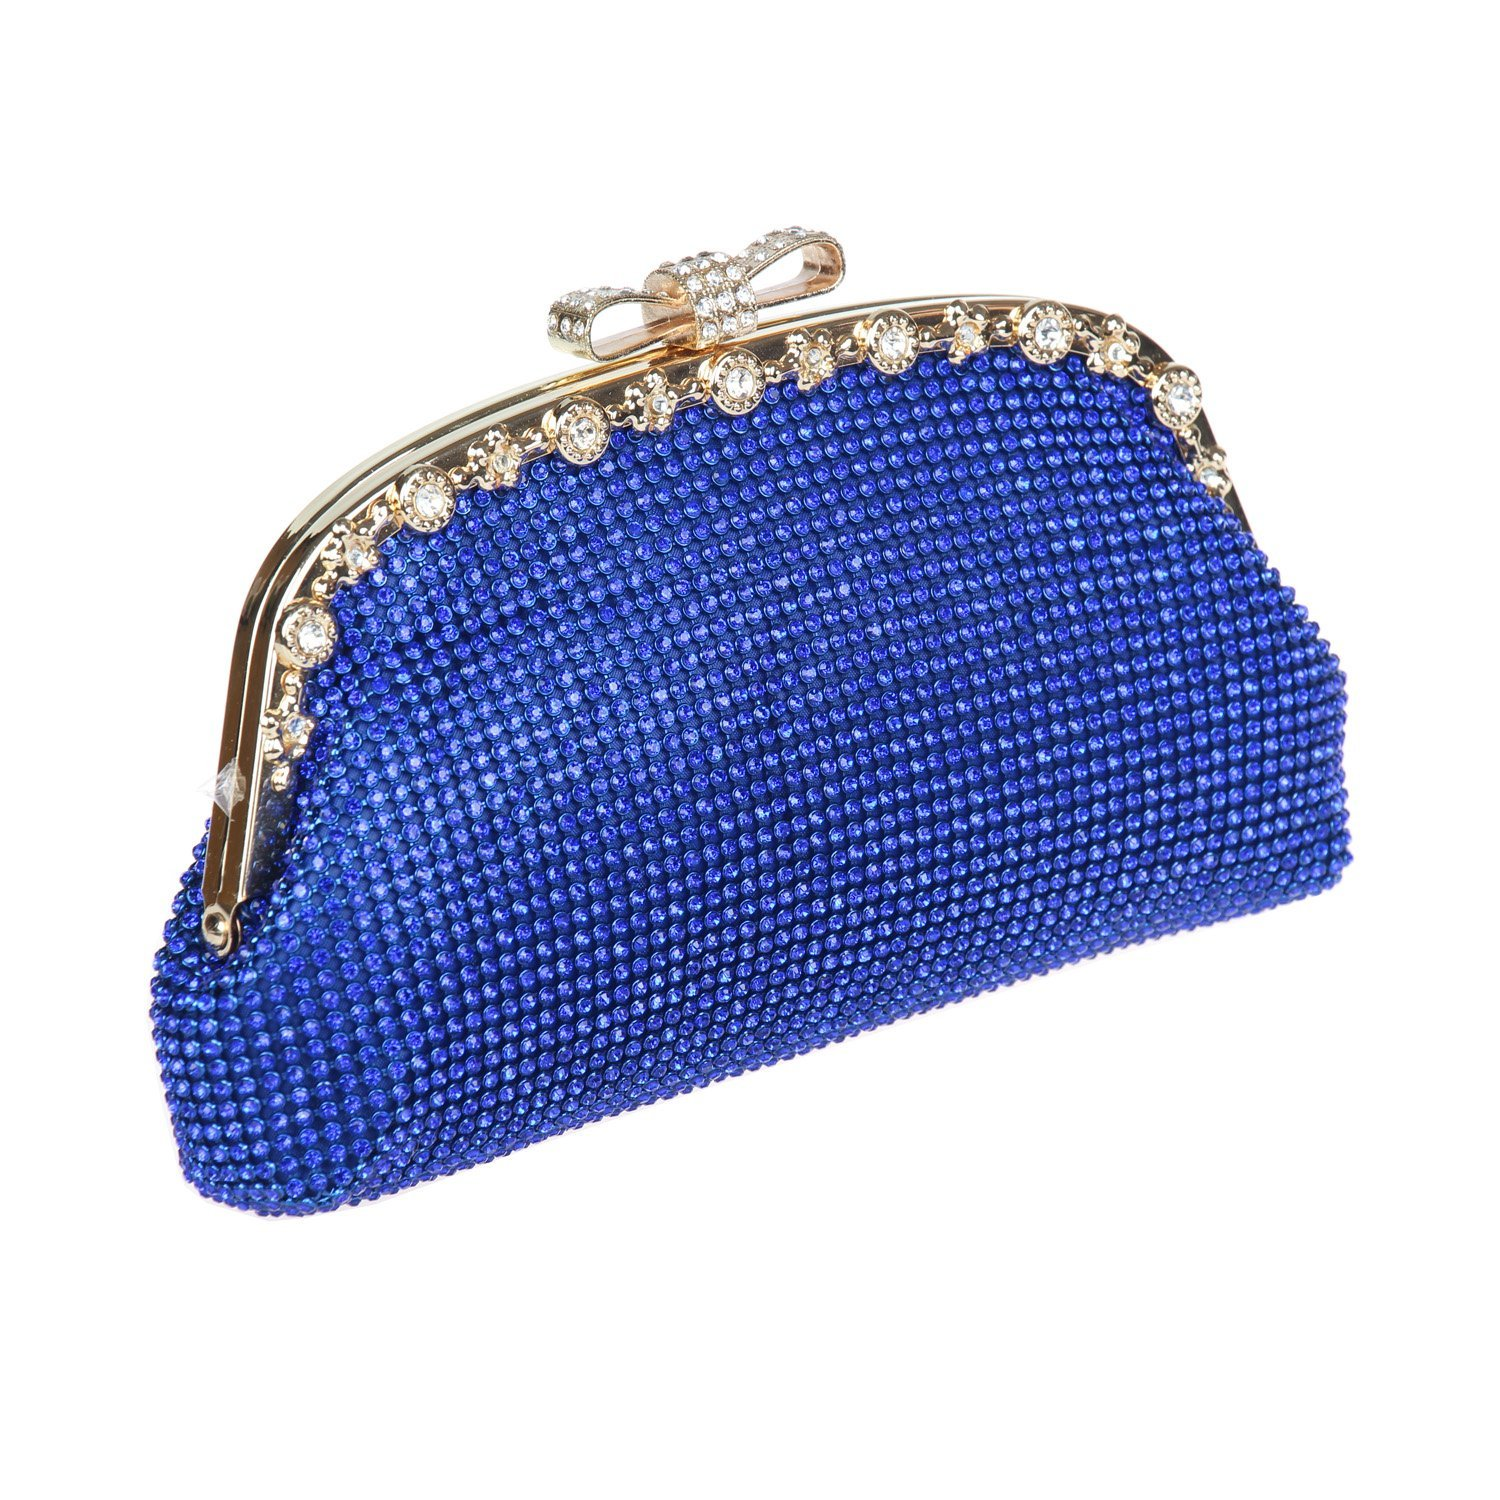 bluee Ustylish Crystal Party Prom Clutch Purse Bag in 8 colors